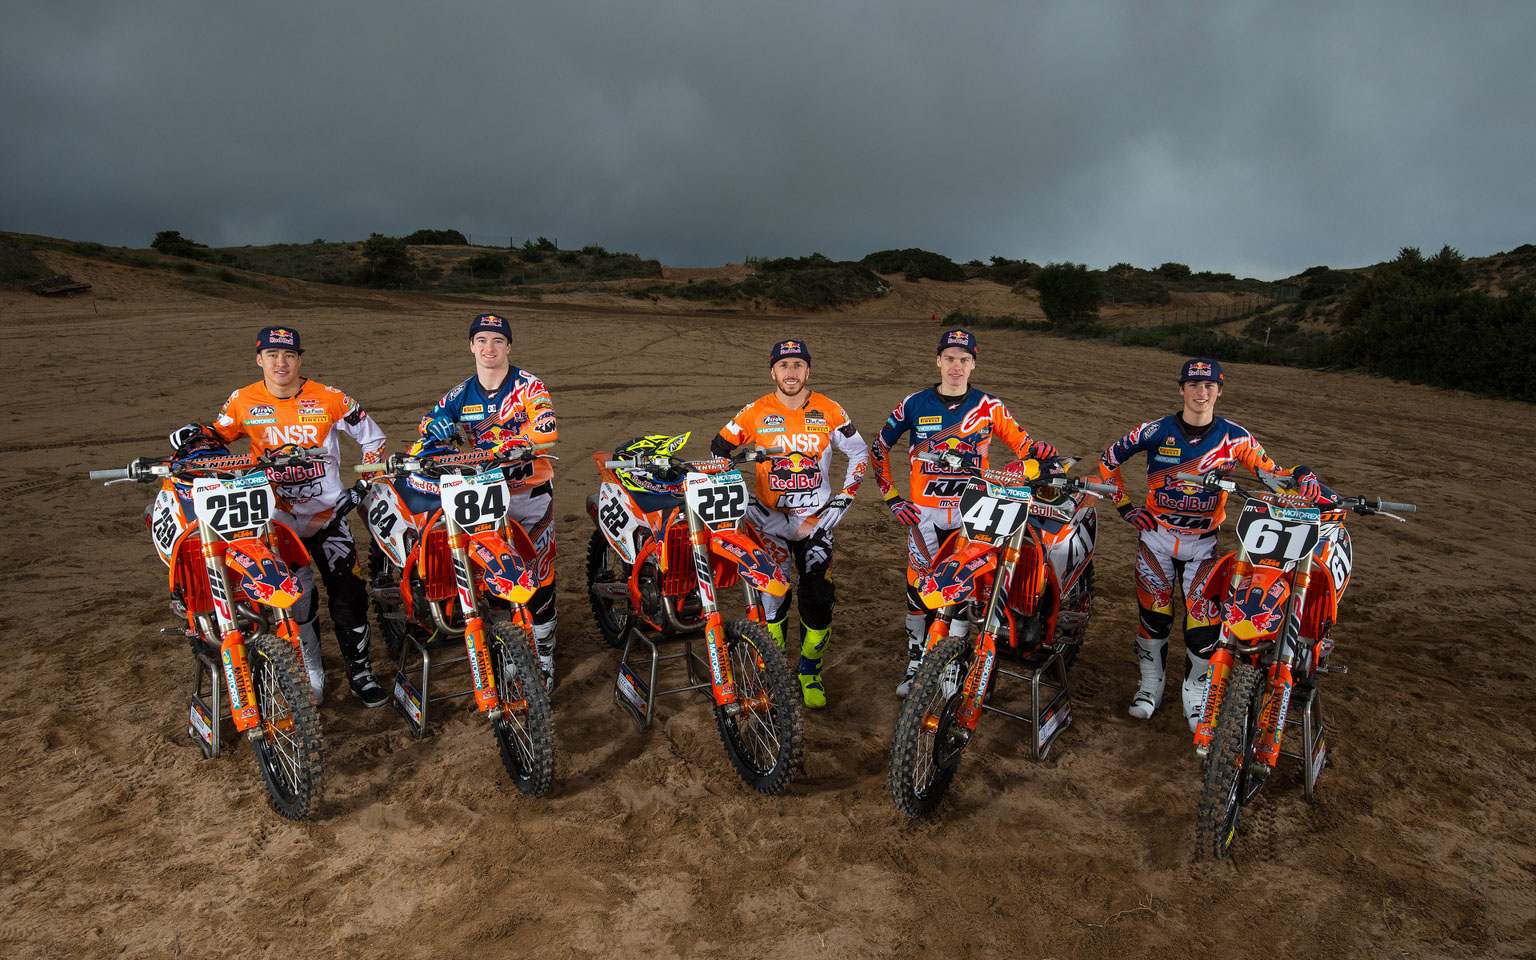 Ktm 450 Sx >> KTM's factory team officially launched! - MotoHead